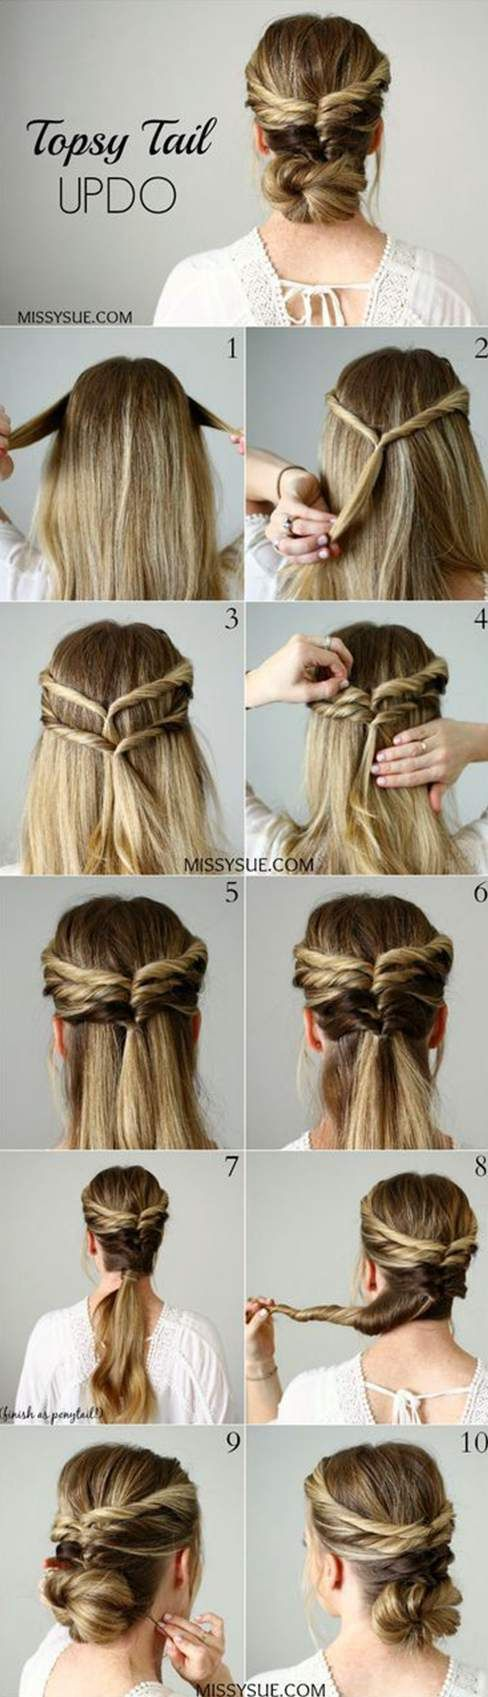 Prom Hairstyles for Shorter Hair - Hair. I have 12 Prom Hairstyles for Shorter Hair for you - with links to tutorials for all! There are styles for all tastes, from elegant to messy & effortless.. affiliate link